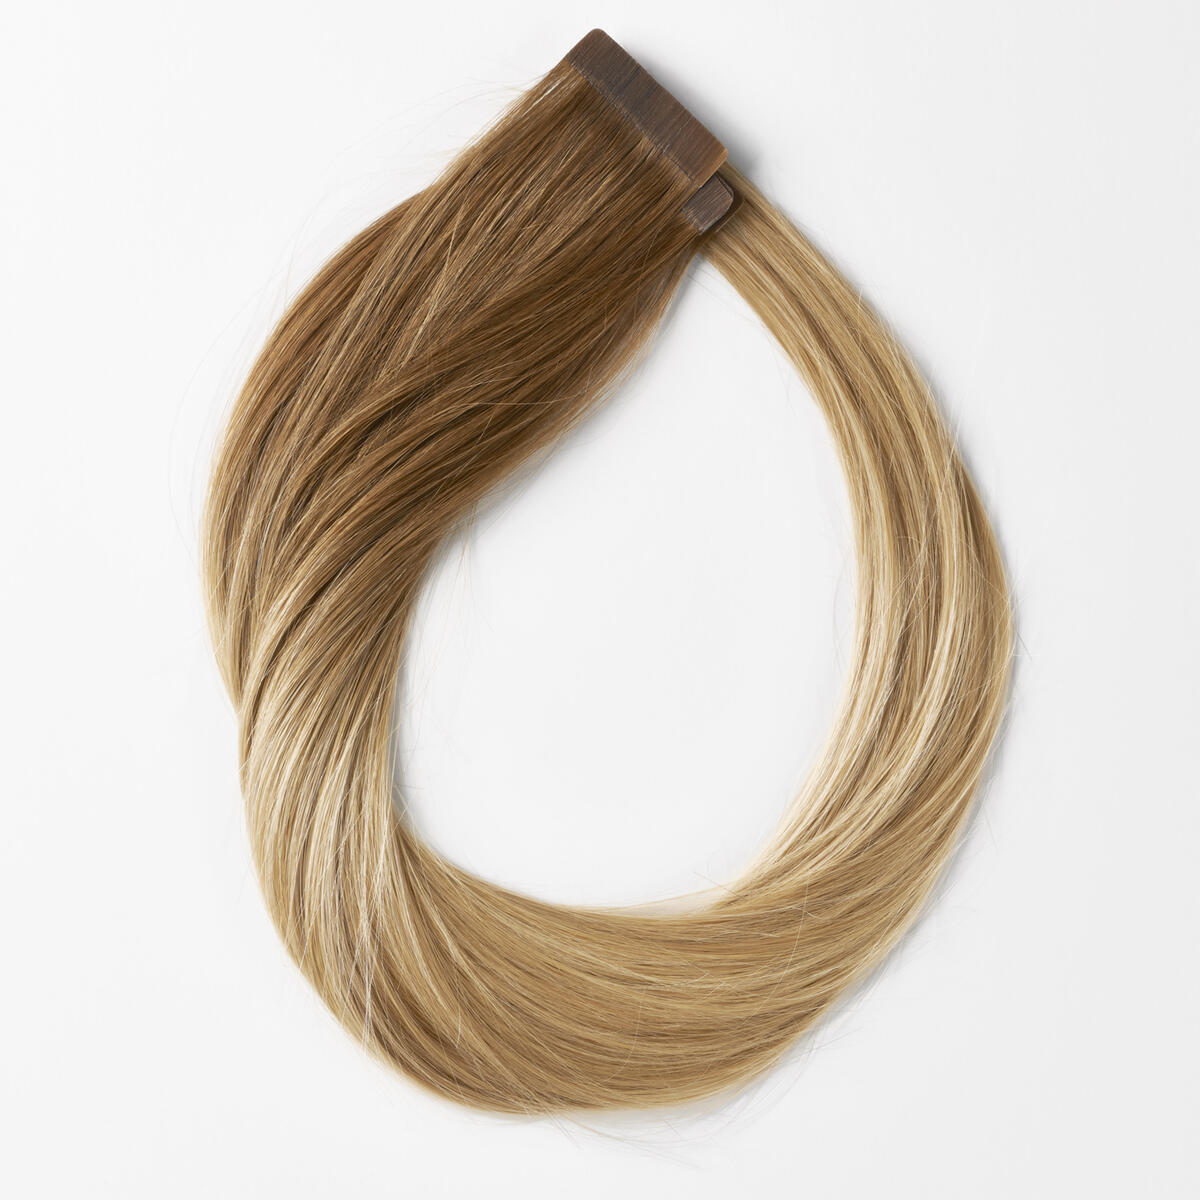 Quick & Easy Original Glatt B5.4/7.2 Cinnamon Blonde Balayage 50 cm